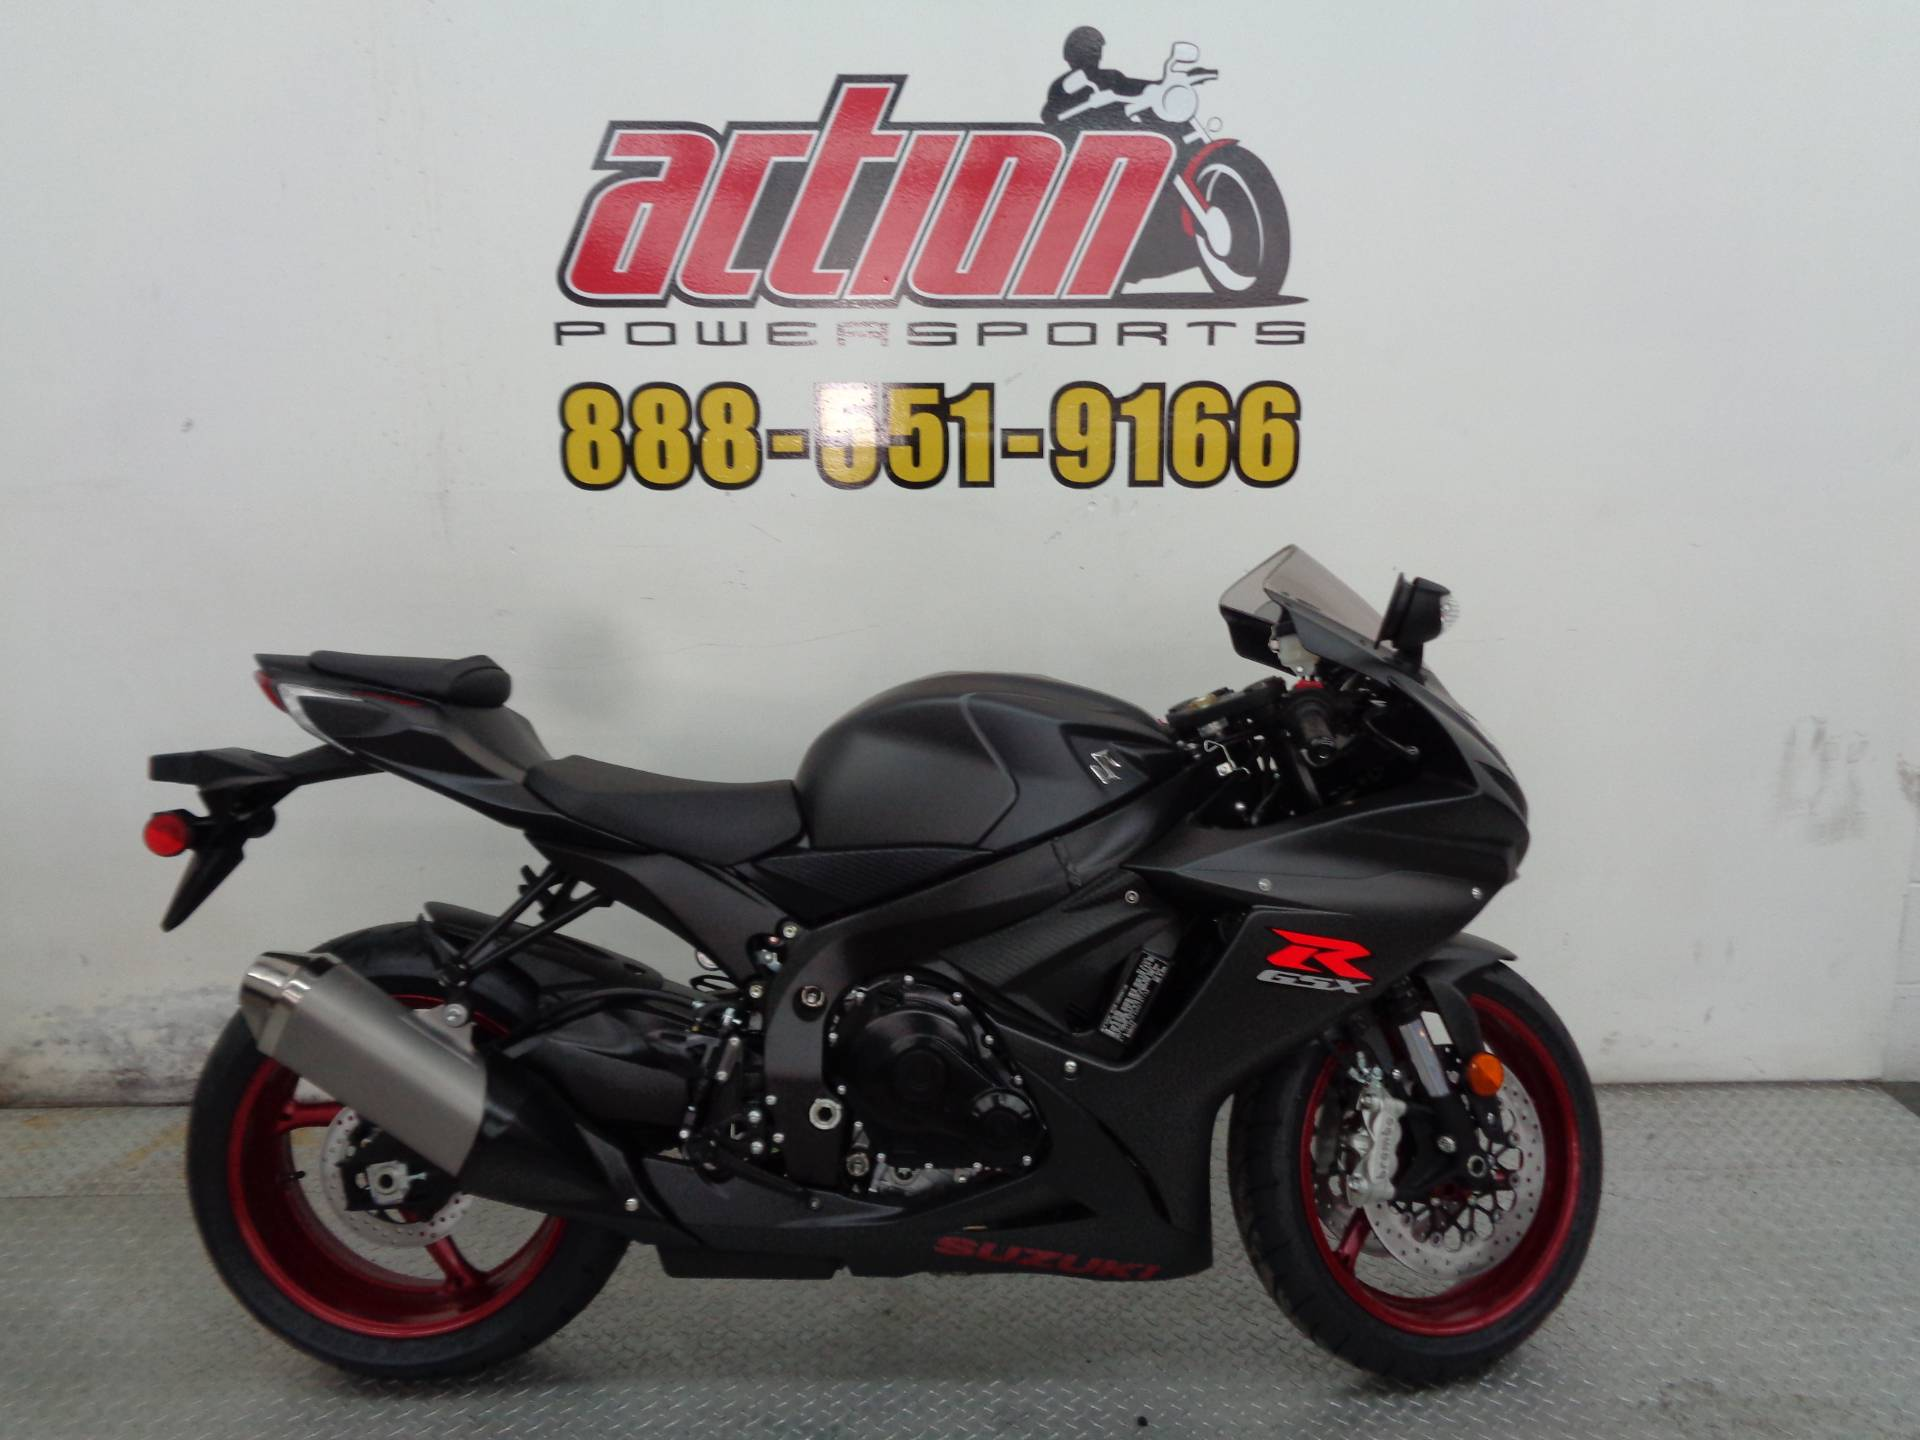 2017 Suzuki GSX-R600 for sale 1059